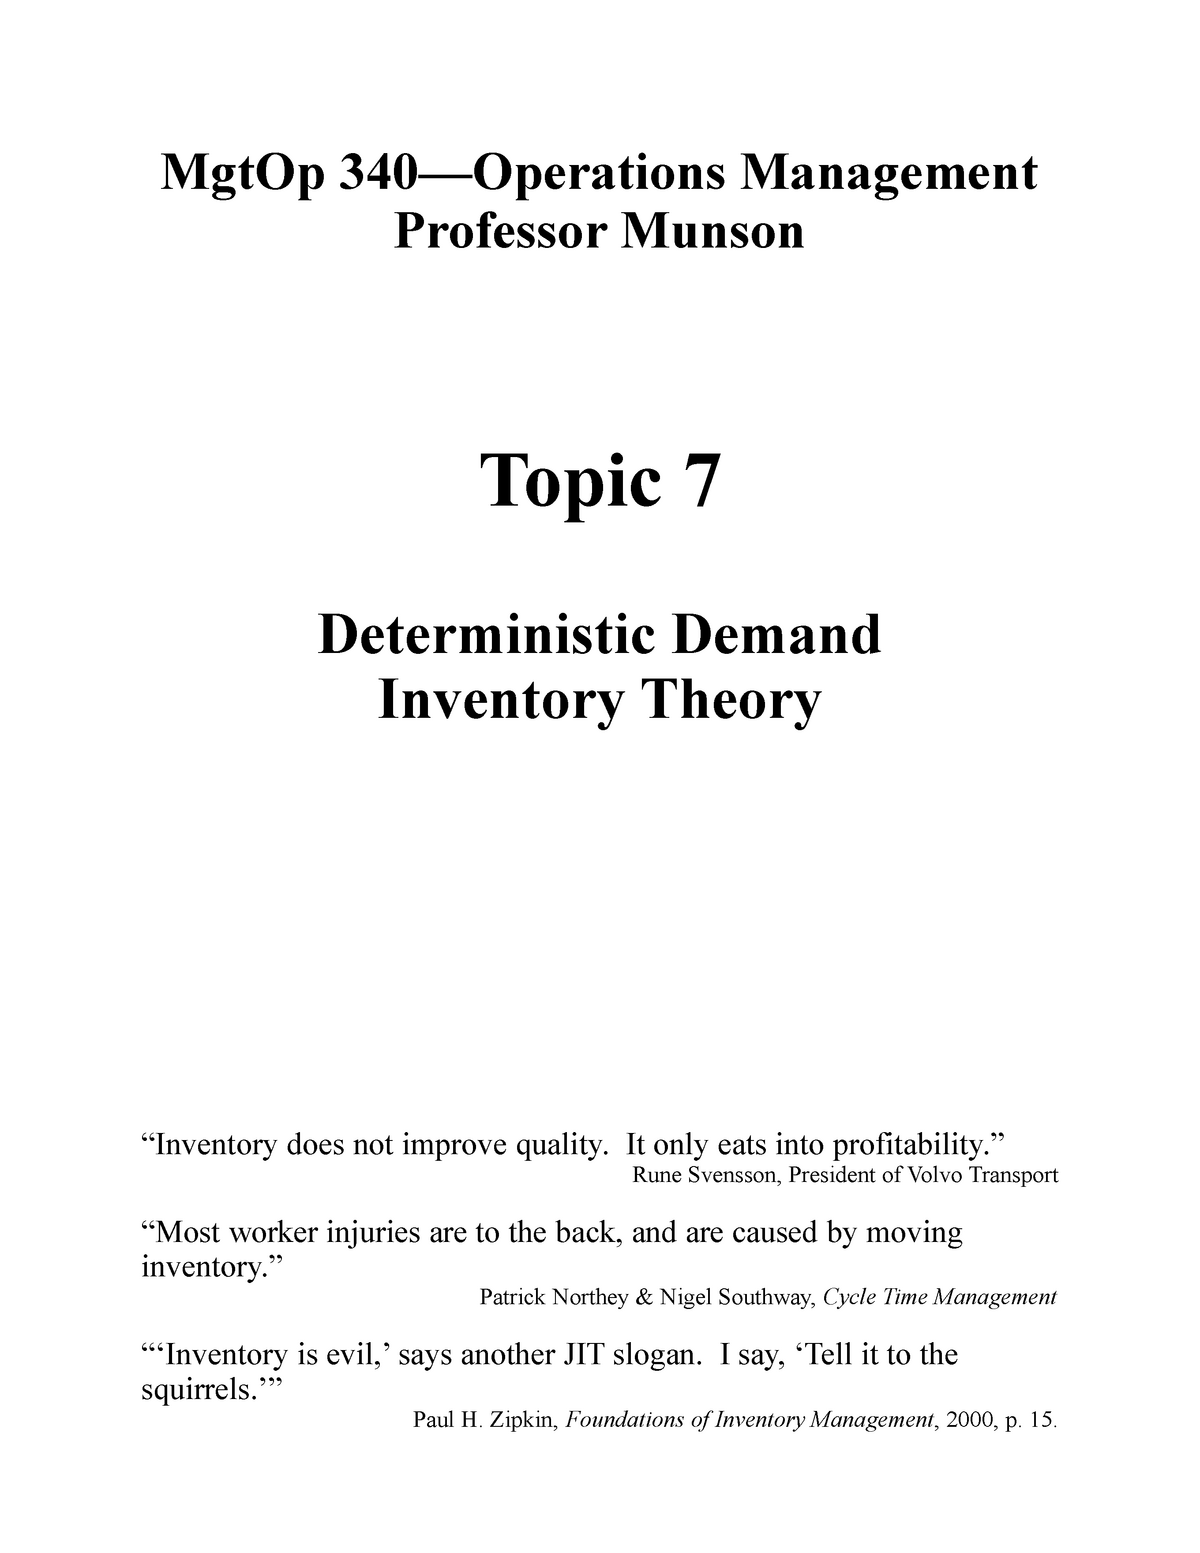 Topic 7 - Deterministic Demand Inventory Theory - MGTOP 340